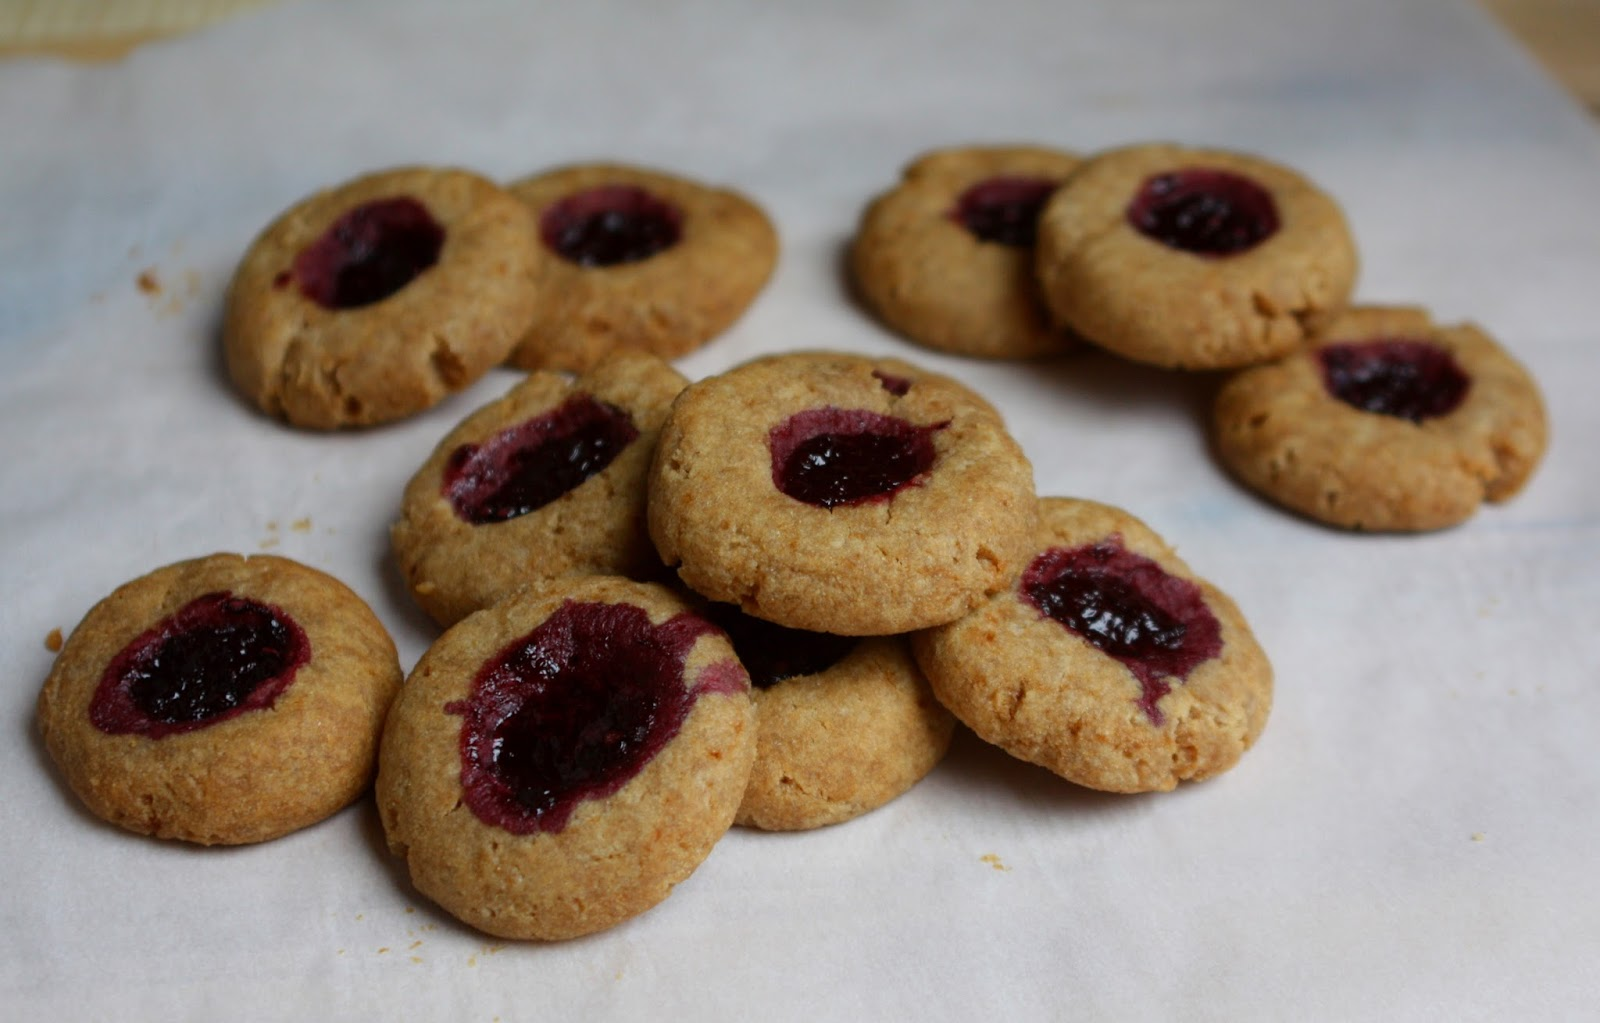 Blackberry Jam Thumbprint Cookies Aip Coconut Free Option Don T